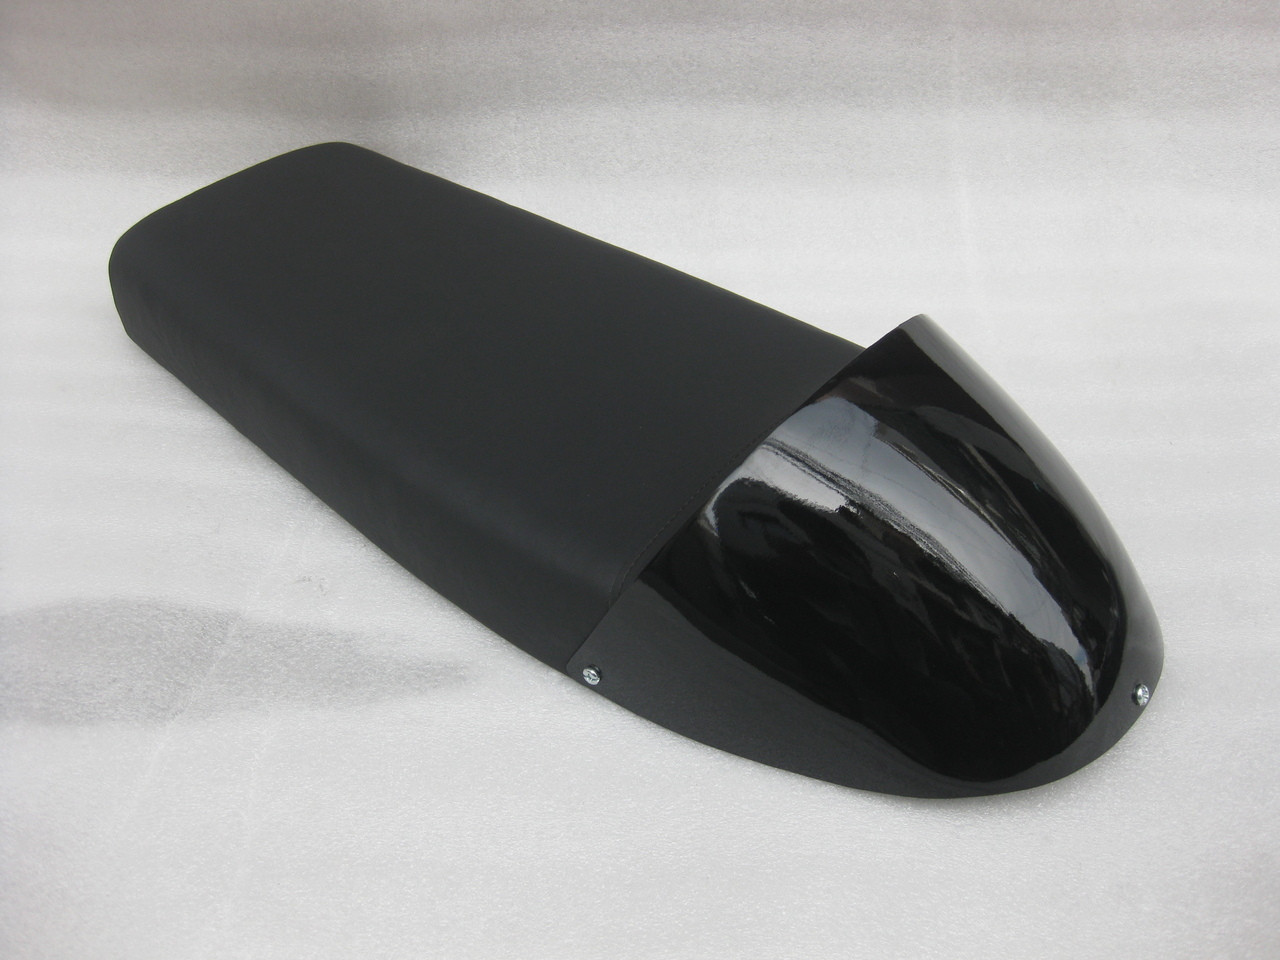 1976 - 1979 Yamaha XS750 Standard XS750F Cafe Racer Motorcycle Seat w/ modified seat pan BLACK cowl #4260